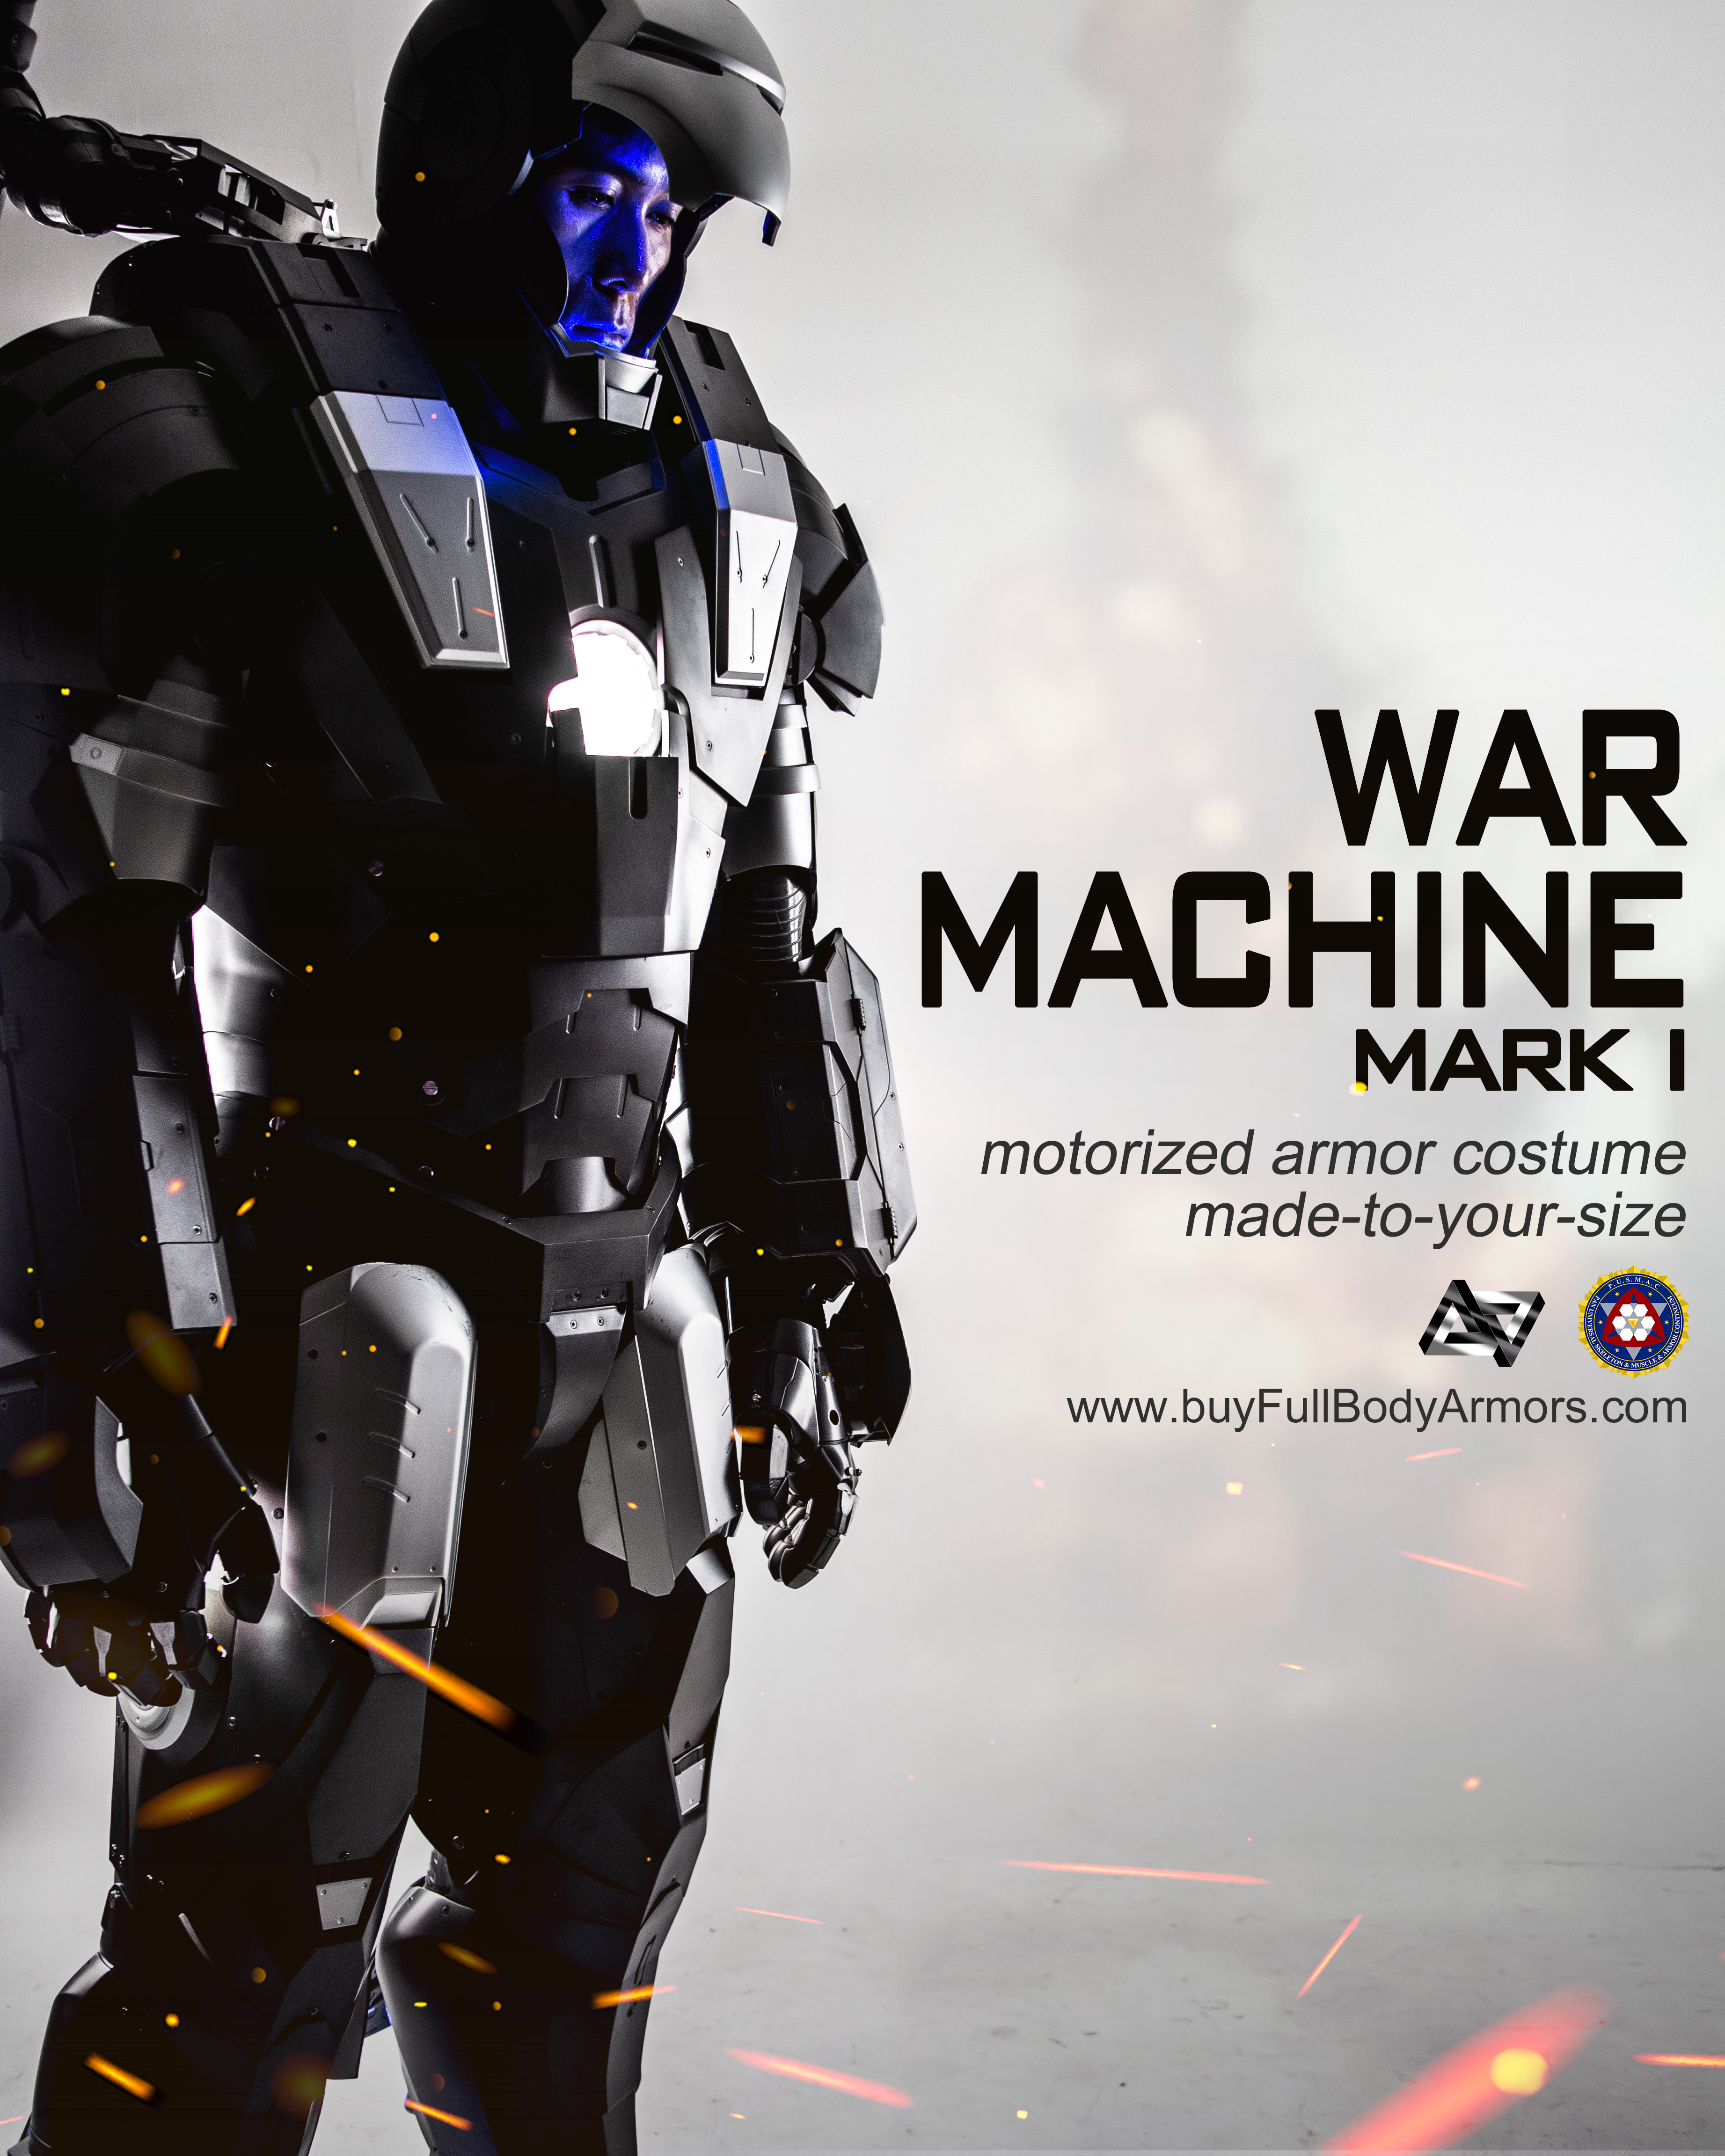 wearable War Machine suit Mark I 1 armor costume style